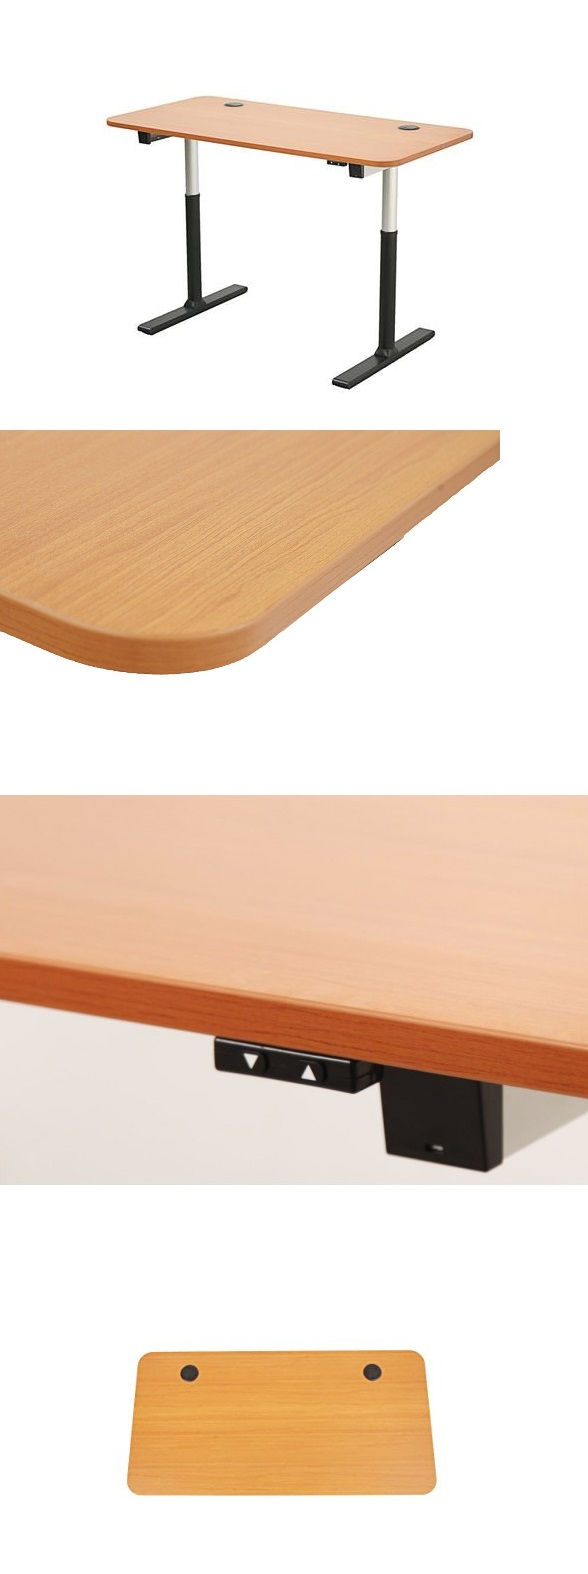 ApexDesk 60-in Wide 2-Button Electric Adjustable Desk- Cherry